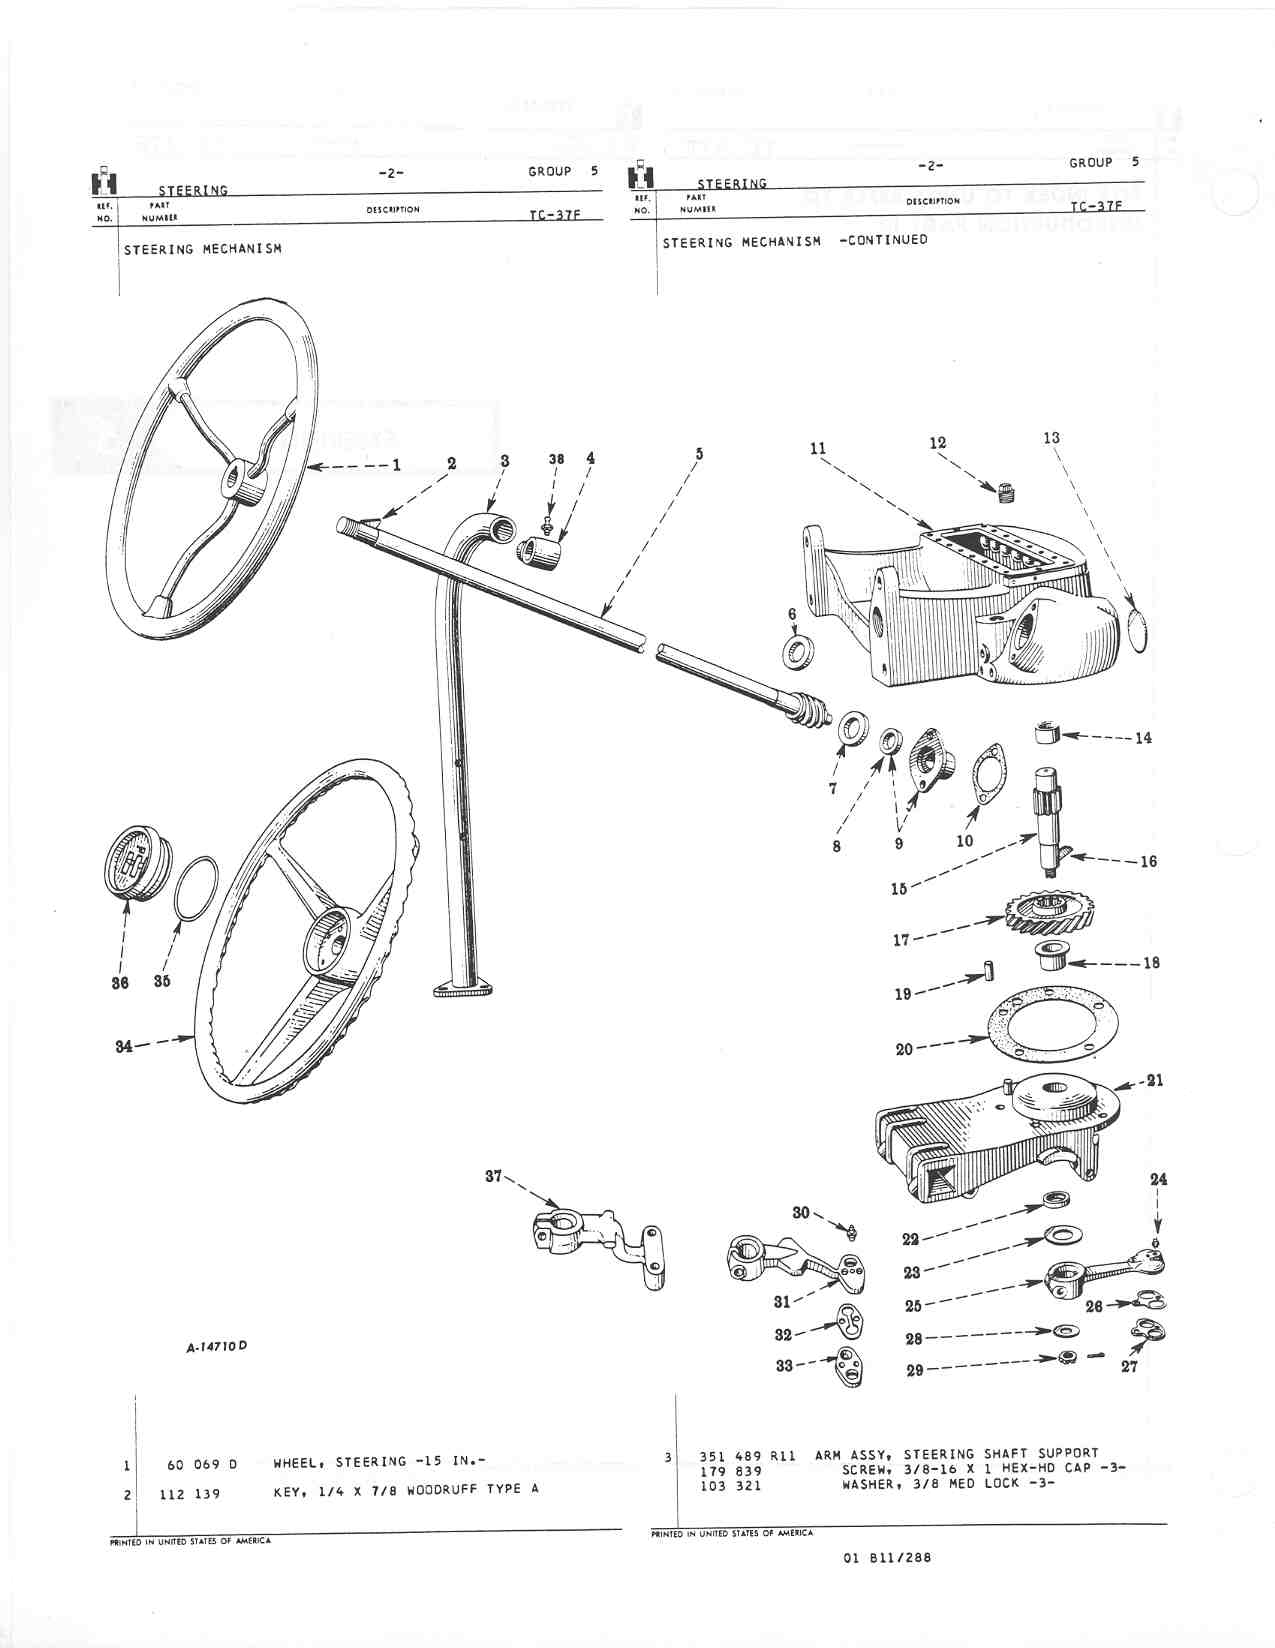 Farmall Cub Gear Box Diagram Schematics Wiring Diagrams Harness Replacement Steering Rh Farmallcub Com 1949 6 Volt